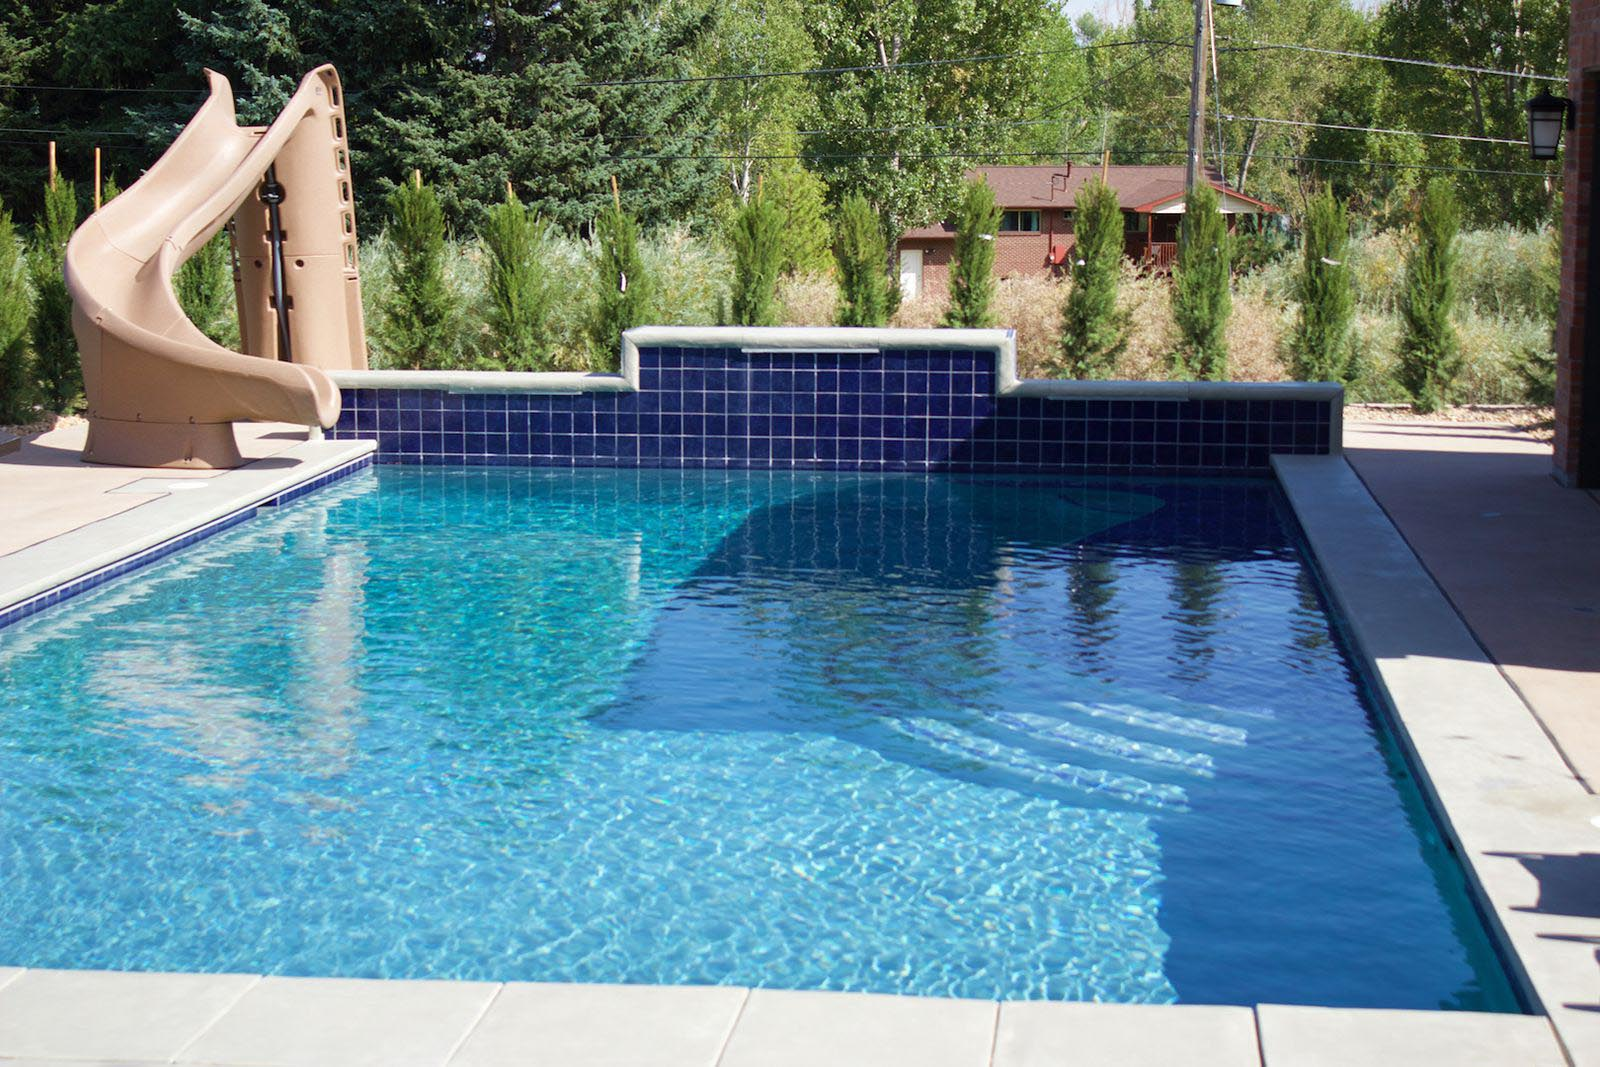 Slide for backyard pool backyard design ideas for Pool design with slide